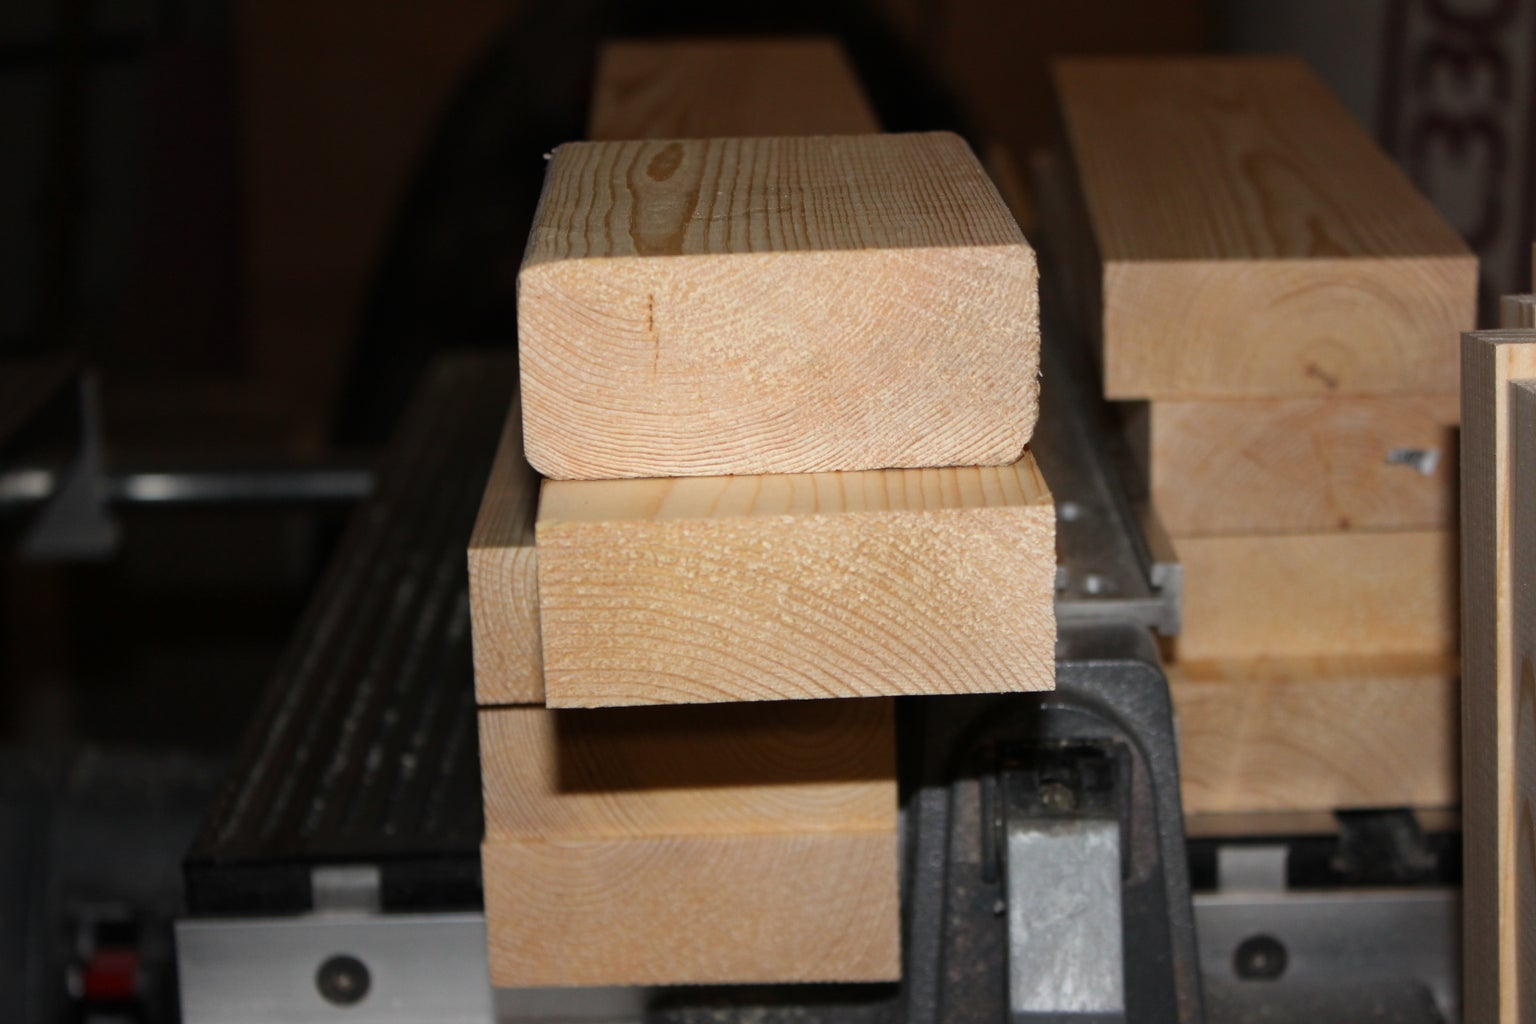 Squaring the 2x4s